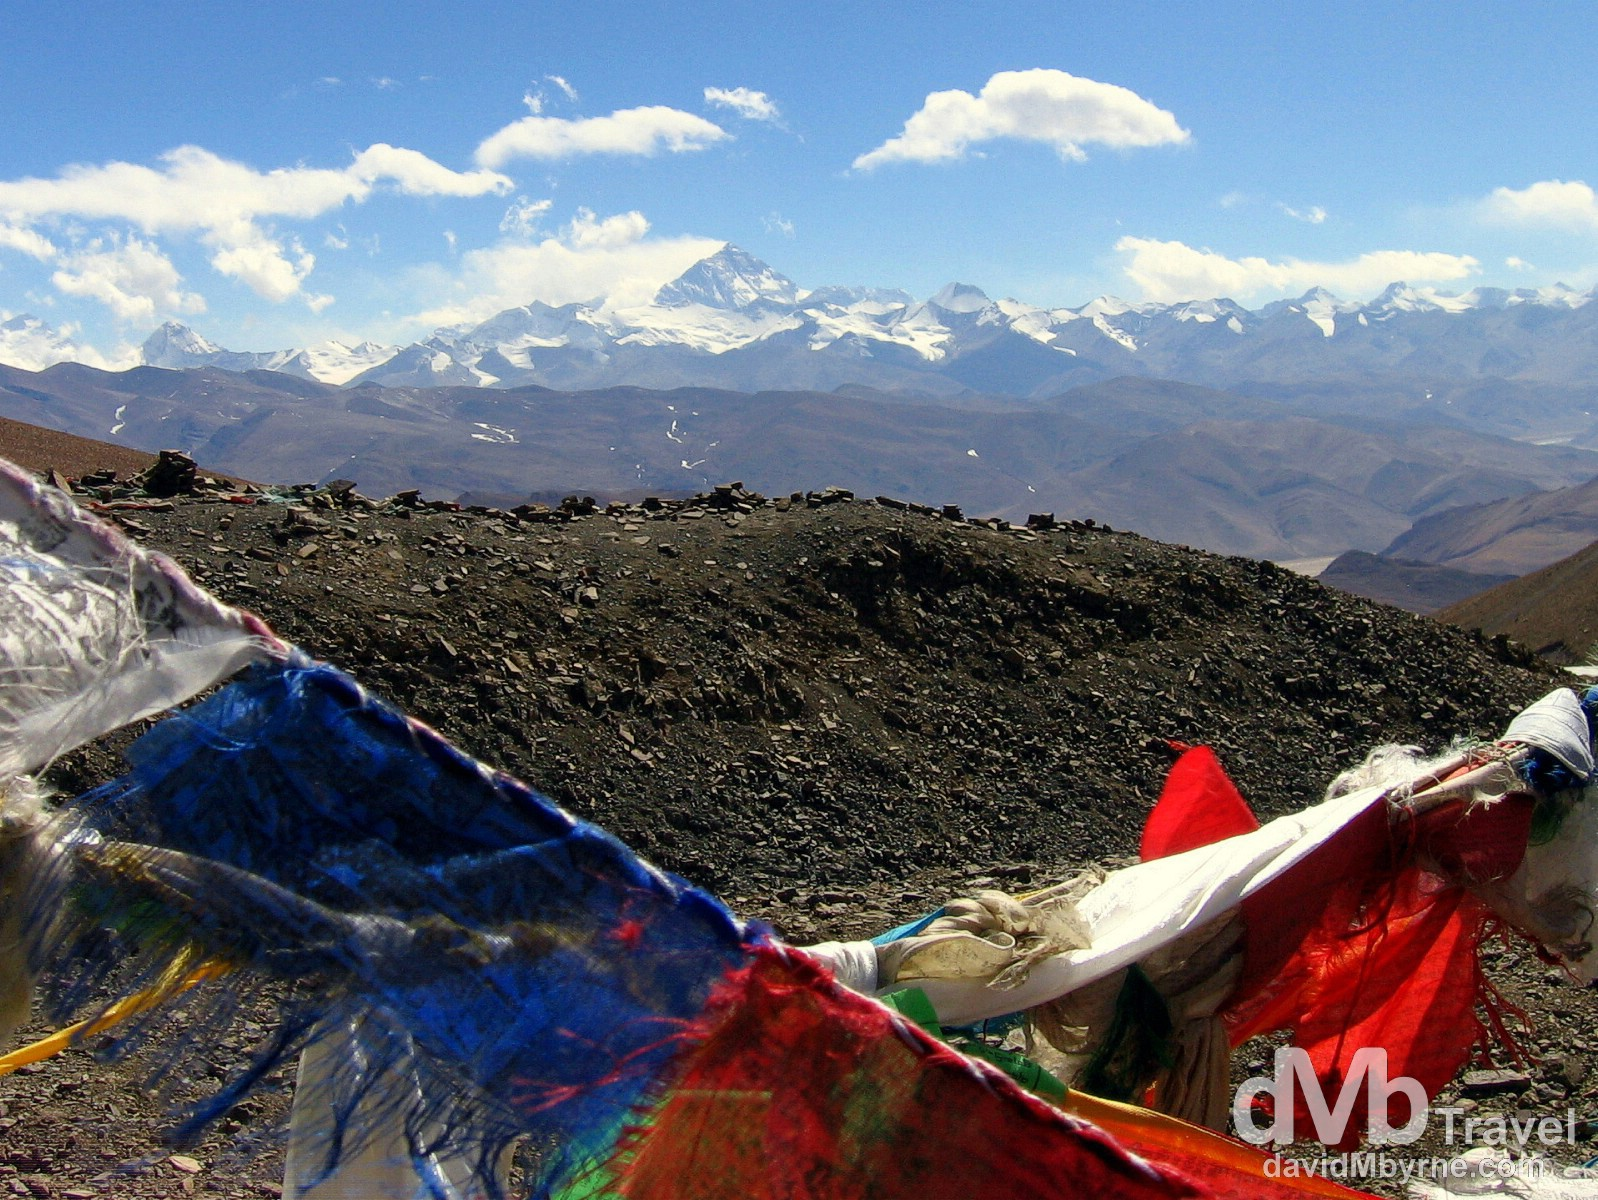 The Everest region from the Pang La pass in Tibet